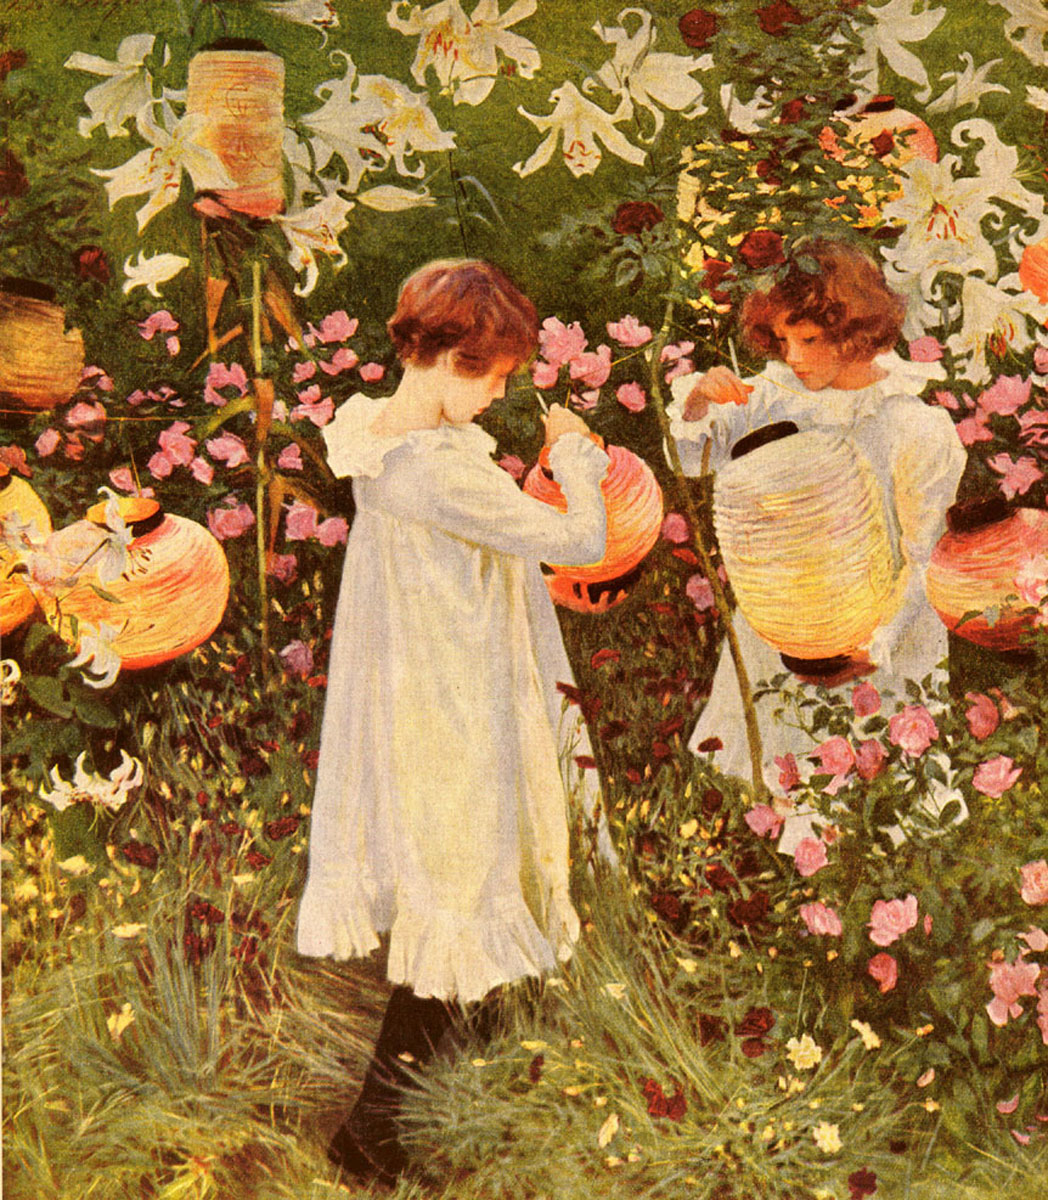 Sargent, Carnation, Lily, Lily, Rose 1885f.jpg